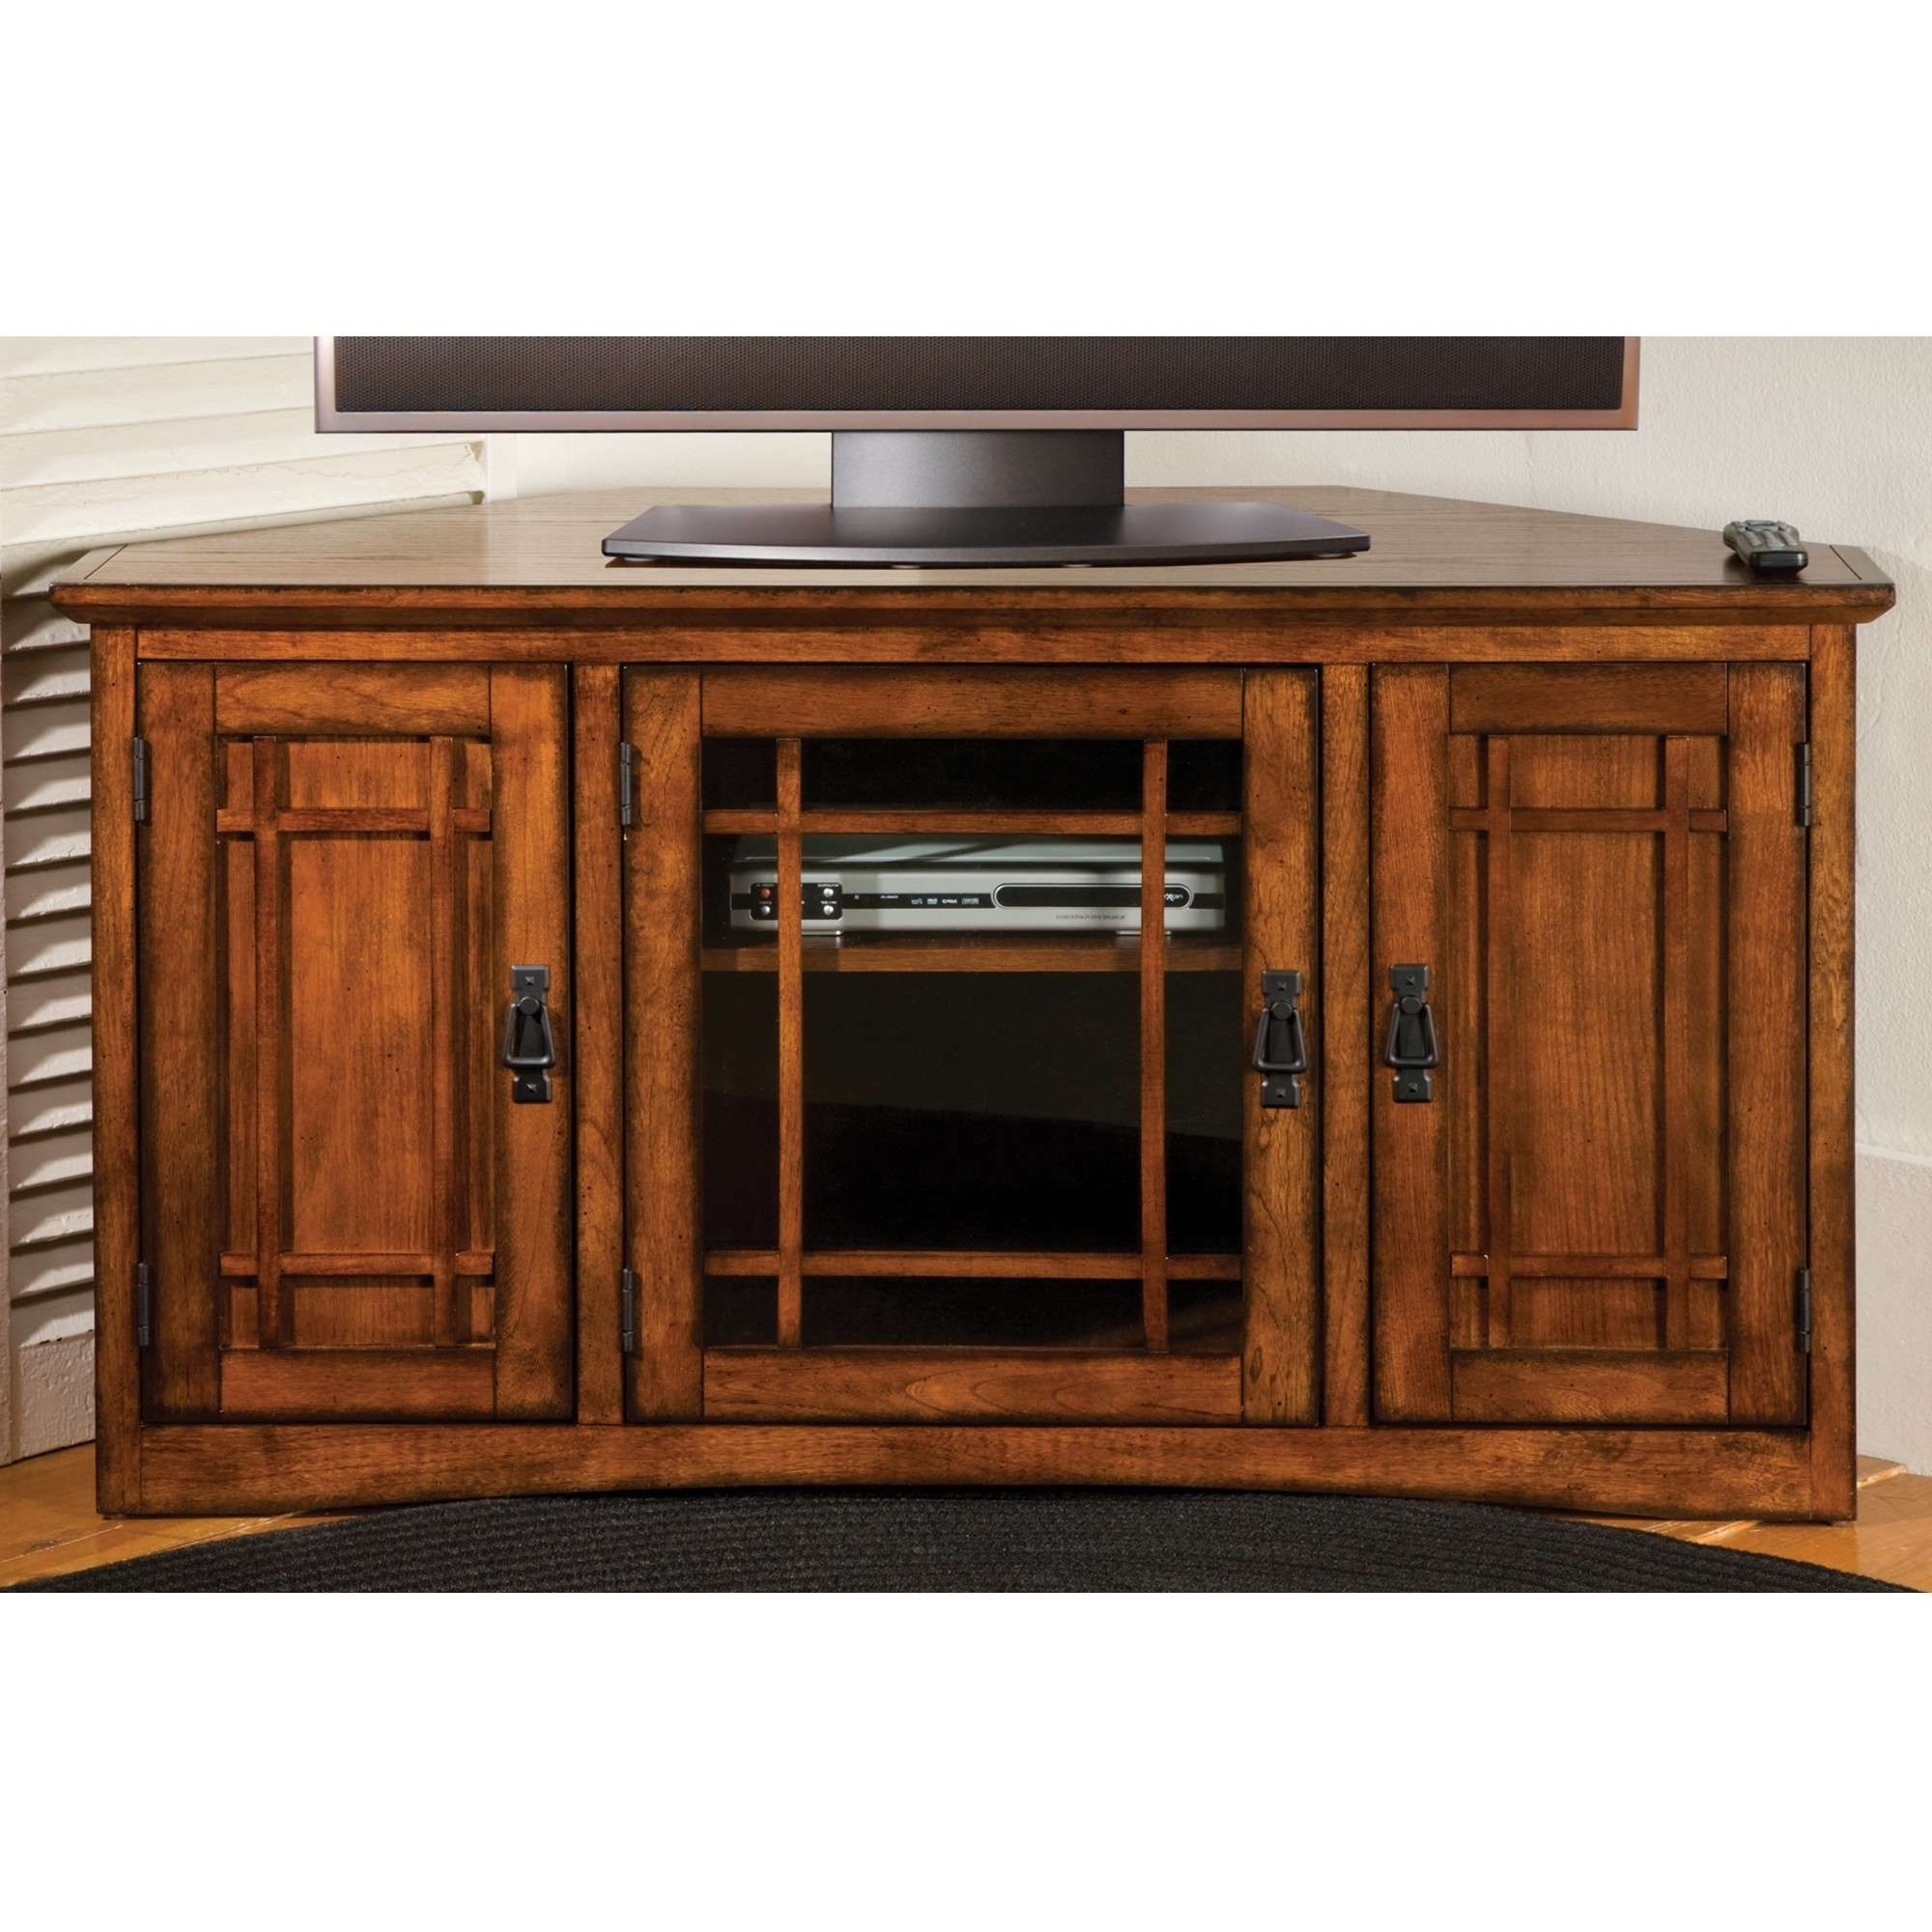 Flat Screen Tv Corner Cabinets With Doors • Cabinet Doors Inside Corner Tv Cabinets For Flat Screen (View 8 of 20)